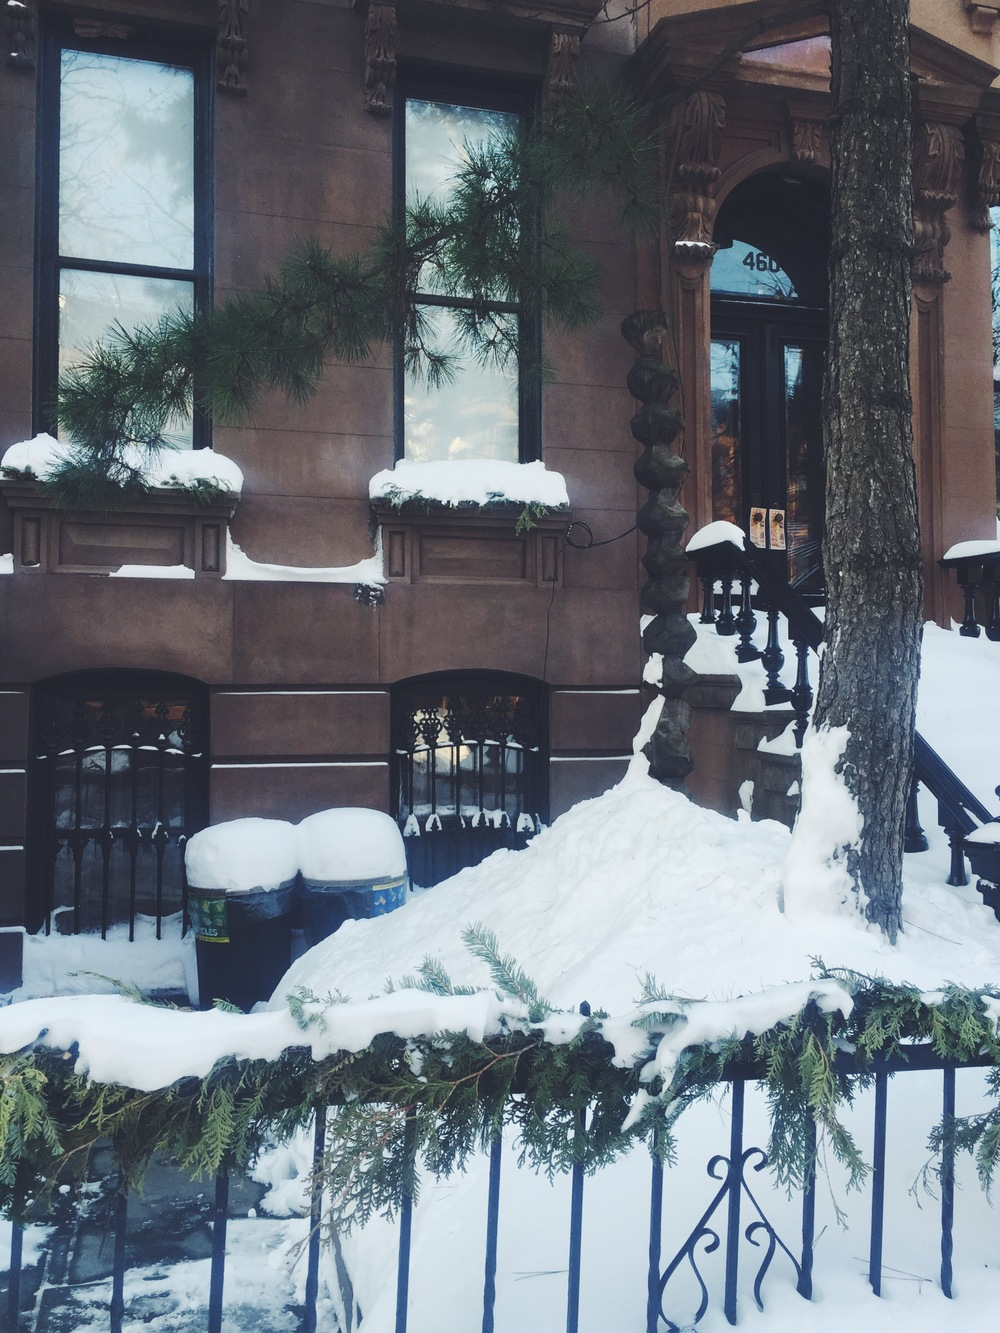 brownstone under snow